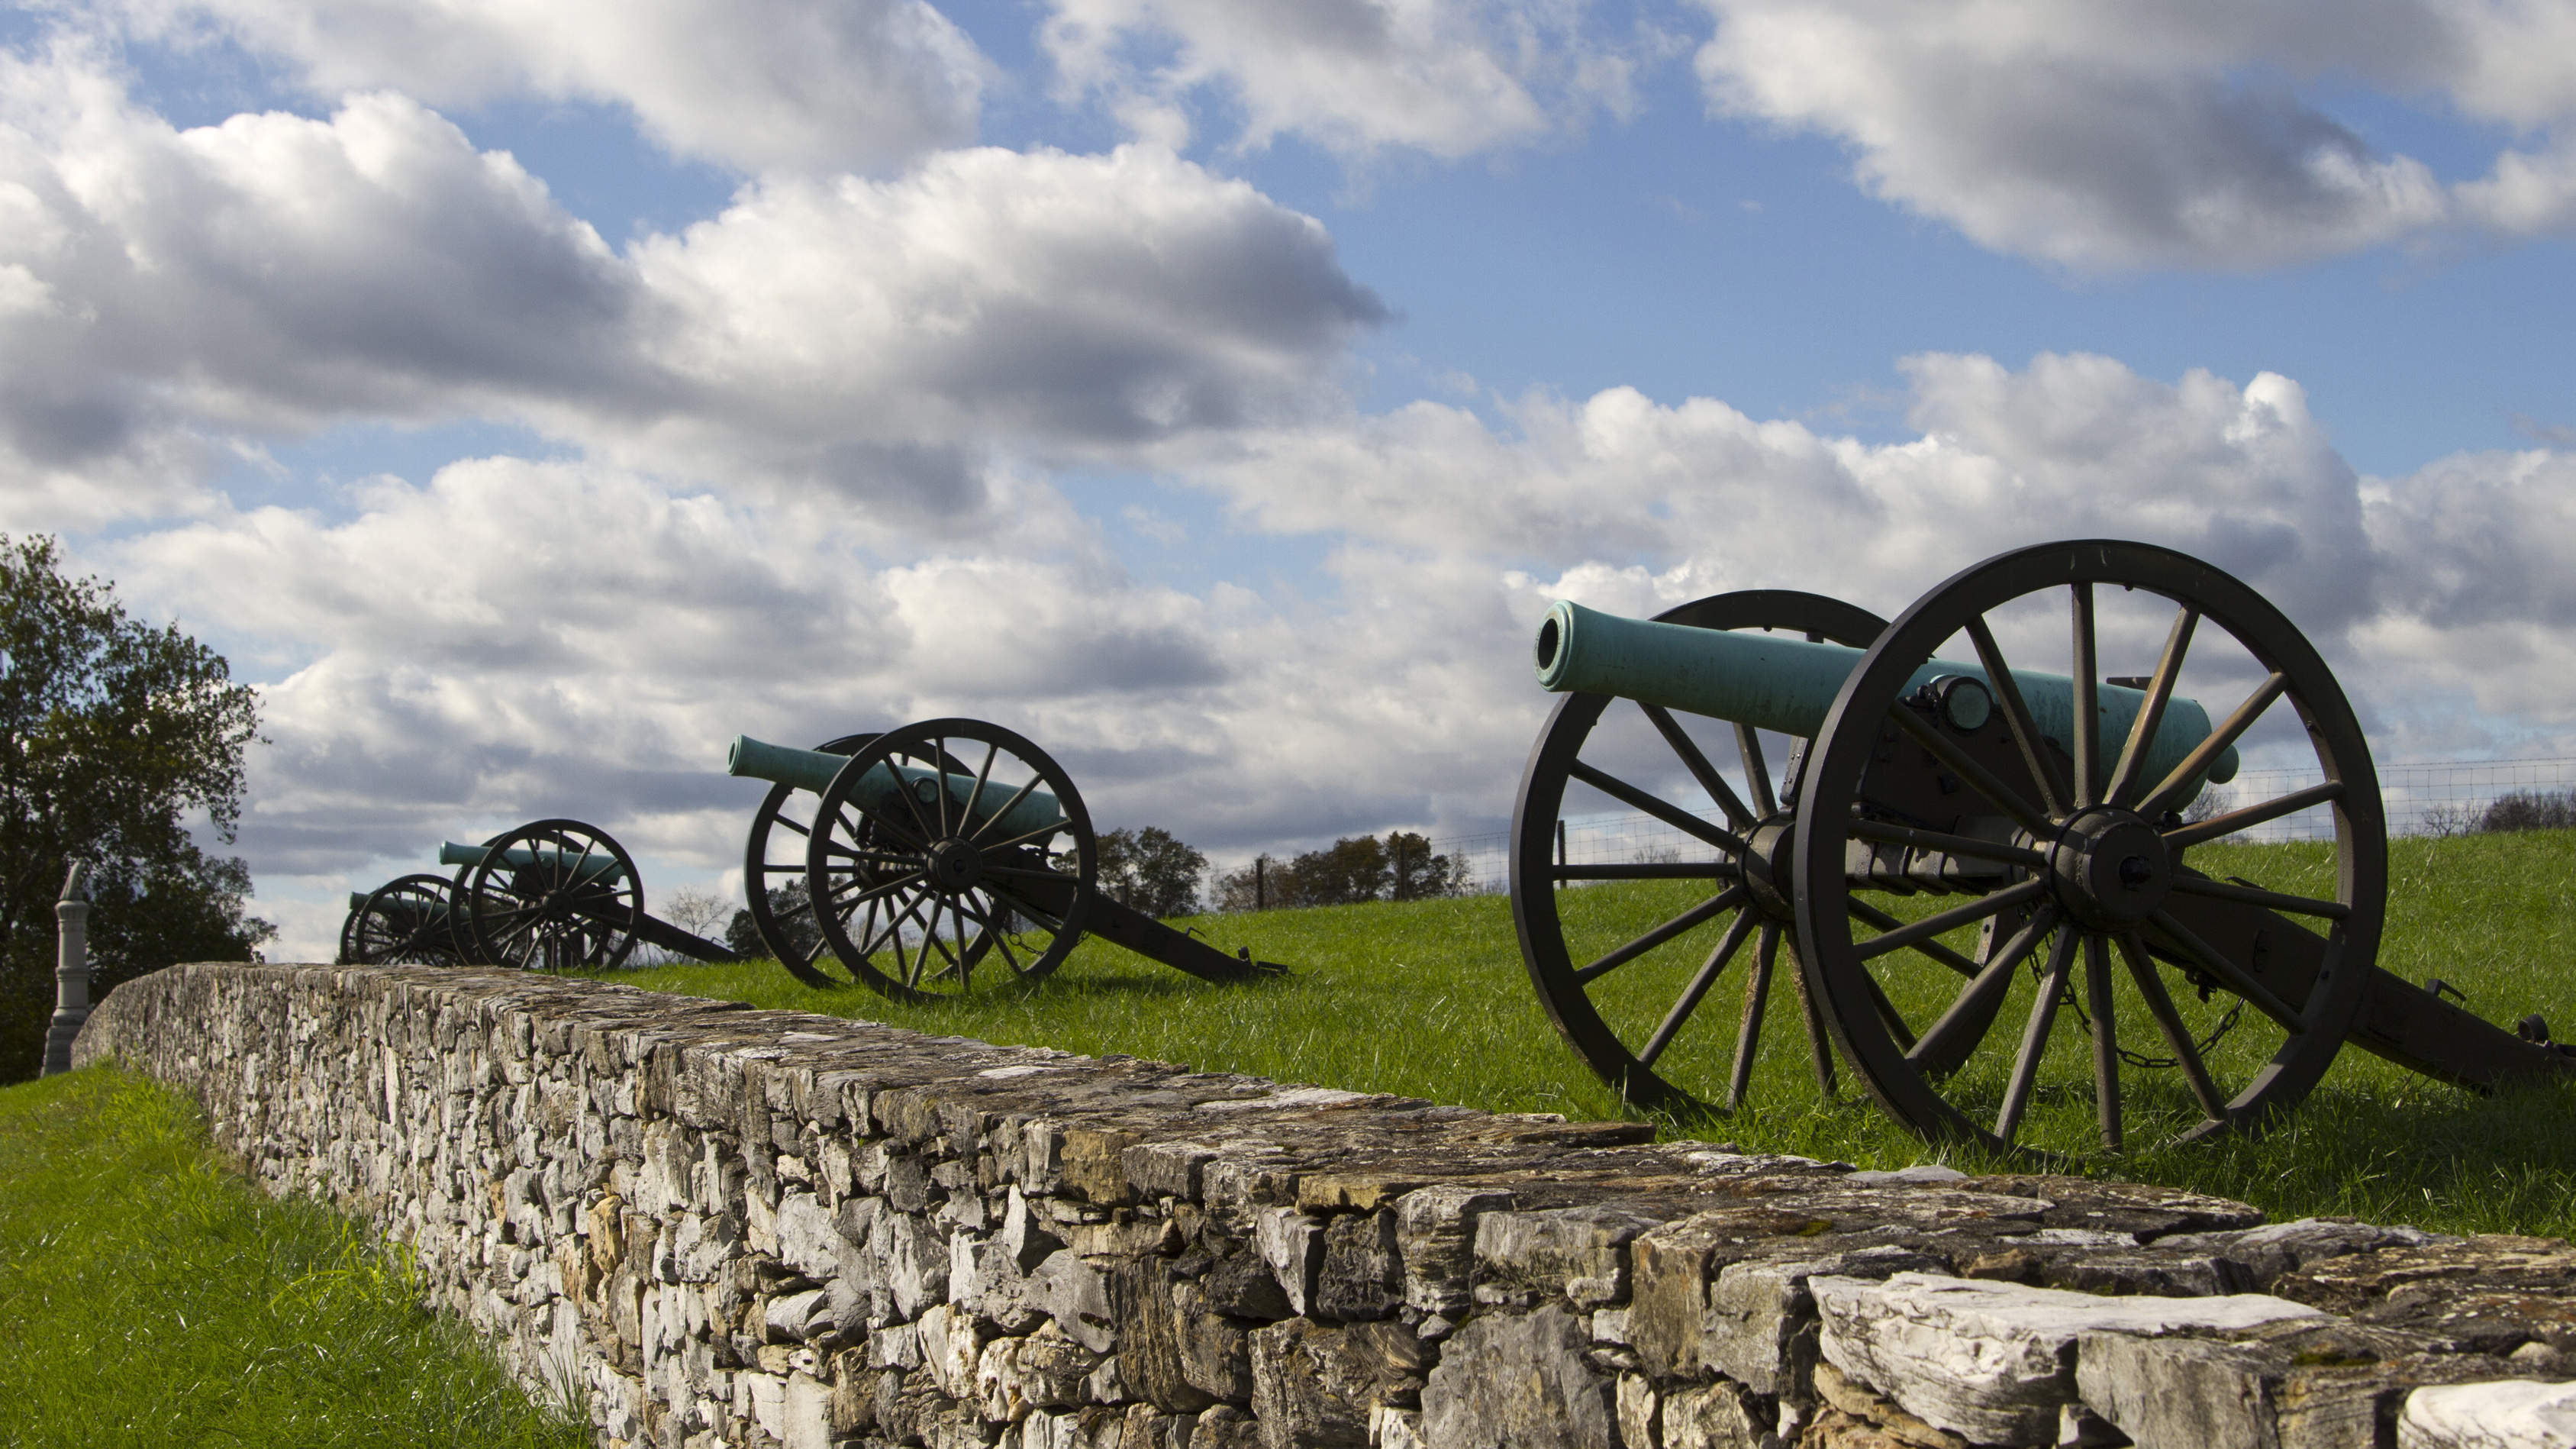 Civil War cannons line a stone wall at Antietam National Battlefield. Photo courtesy of the National Park Service.